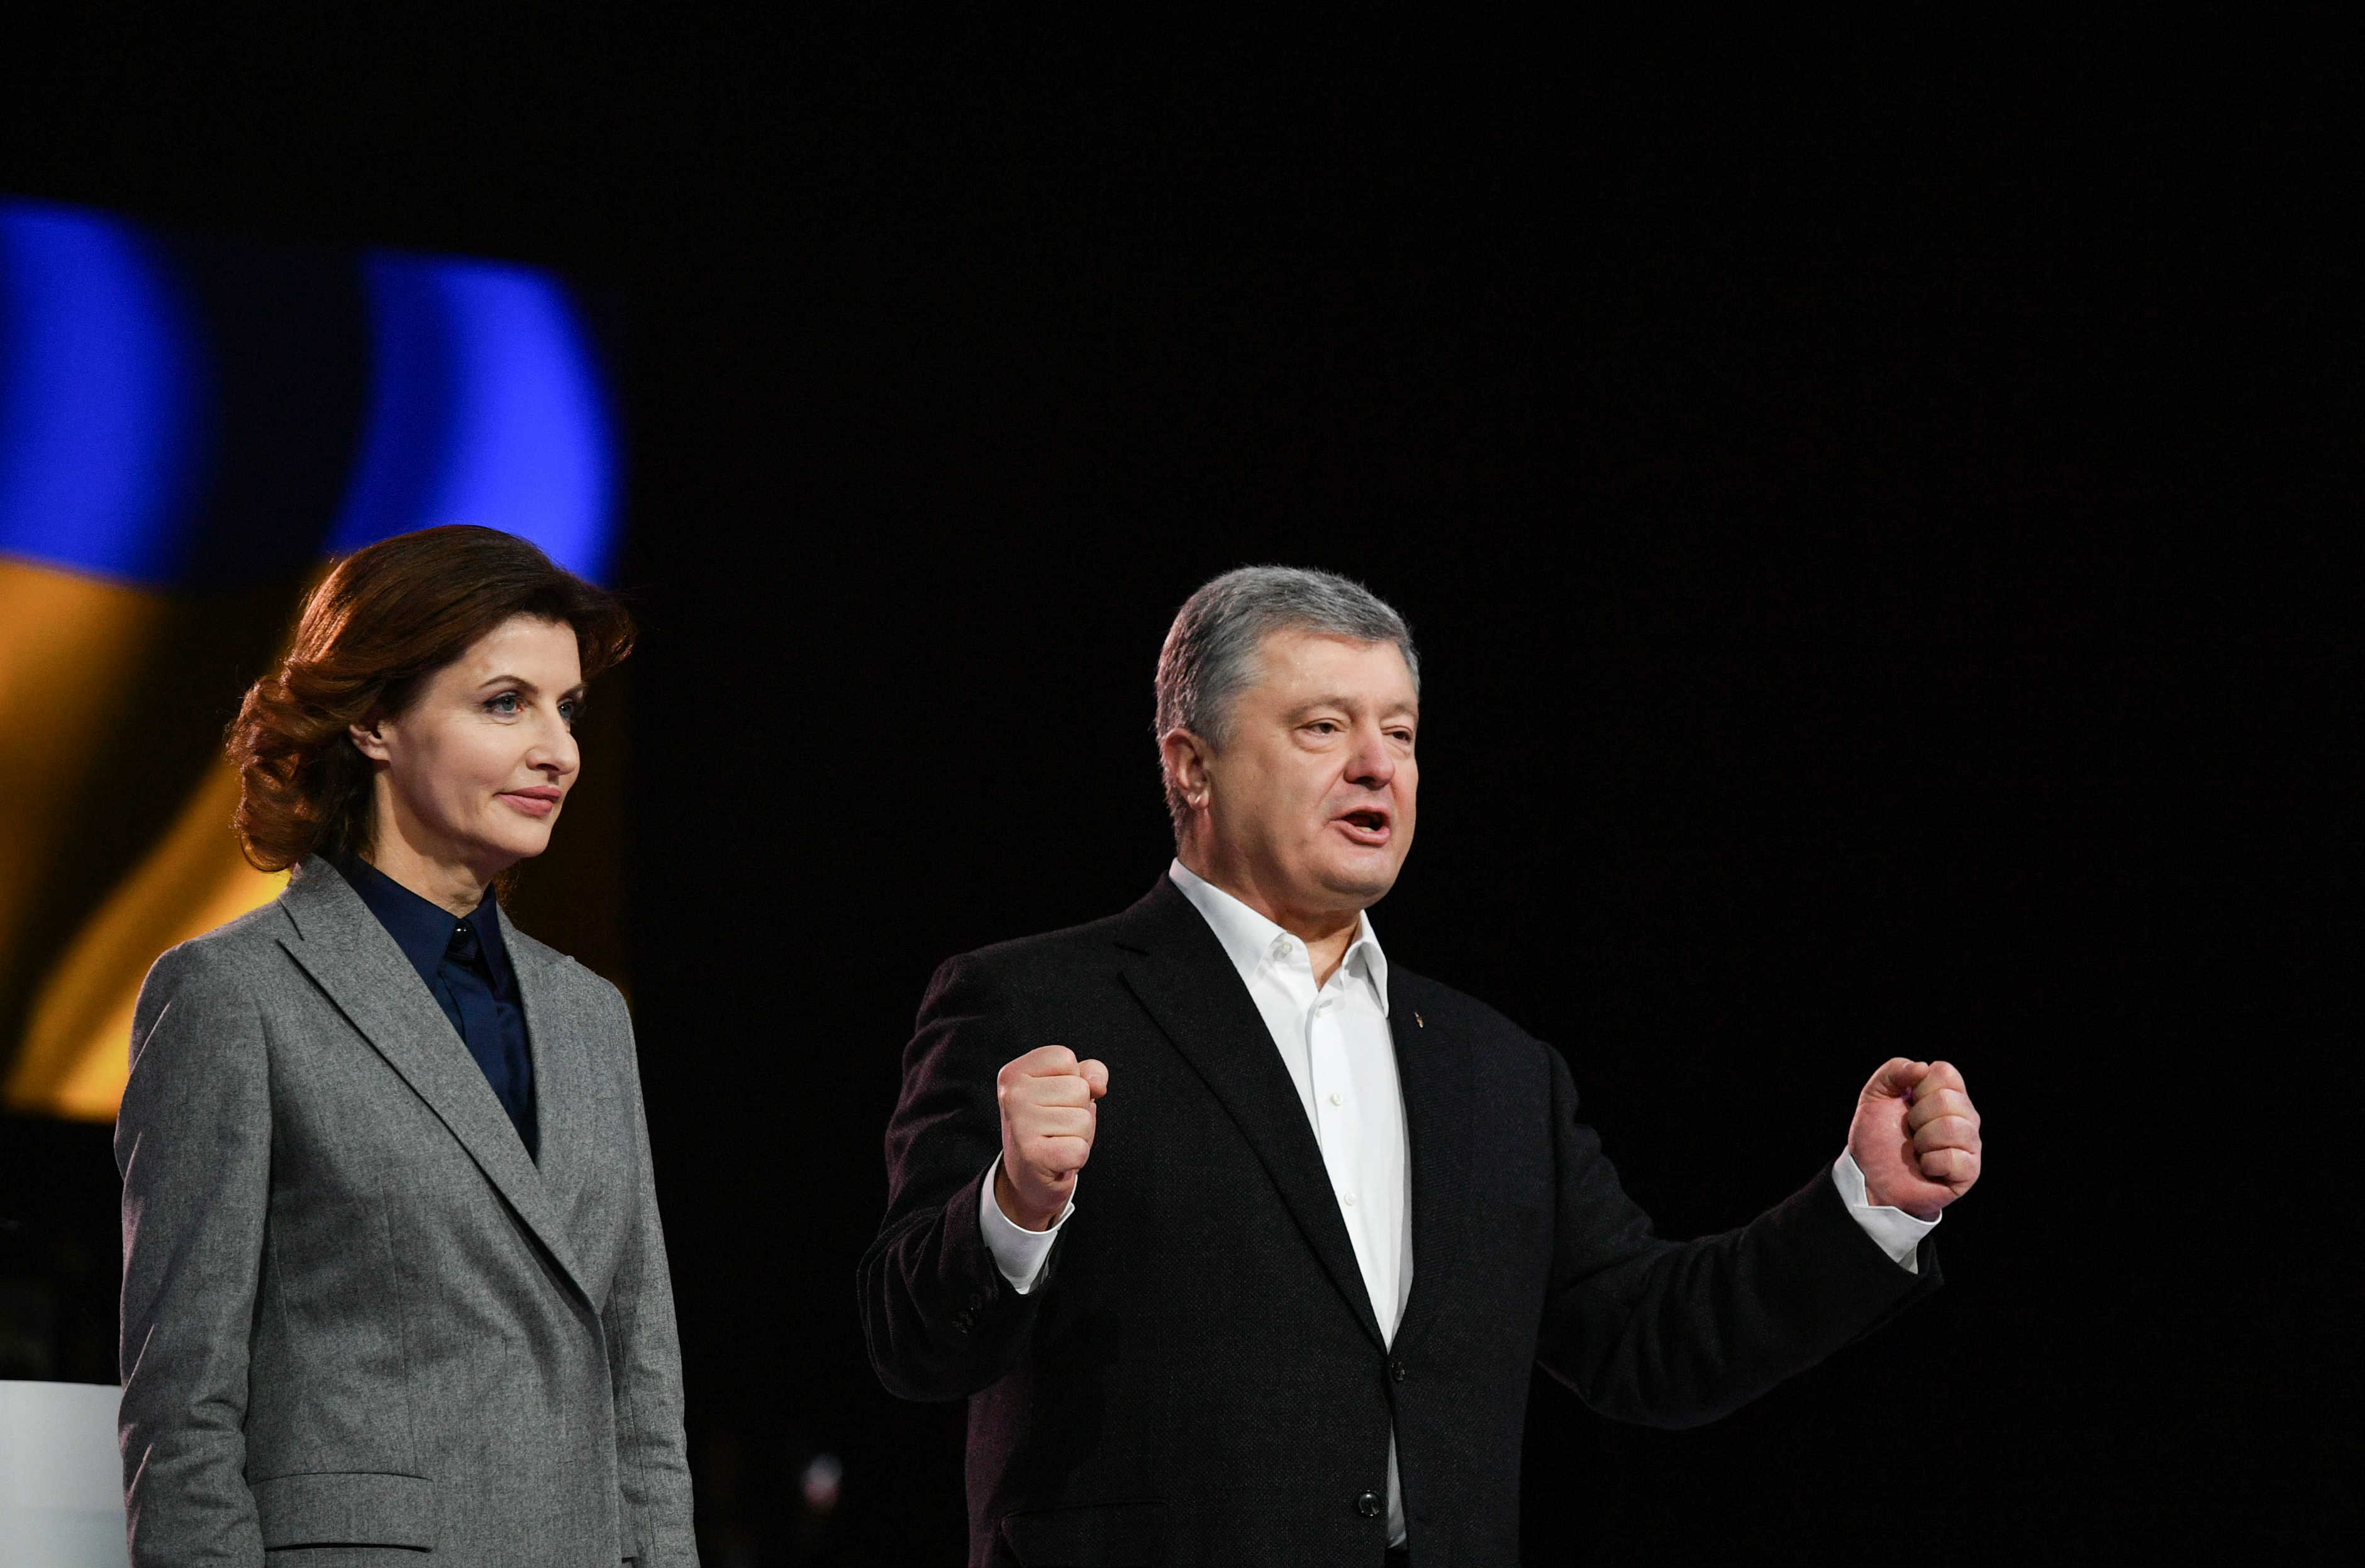 Sure, Ukraine's Not Going to Elect a Pro-Russian President, but There Are Many Other Ways the Kremlin Can Interfere